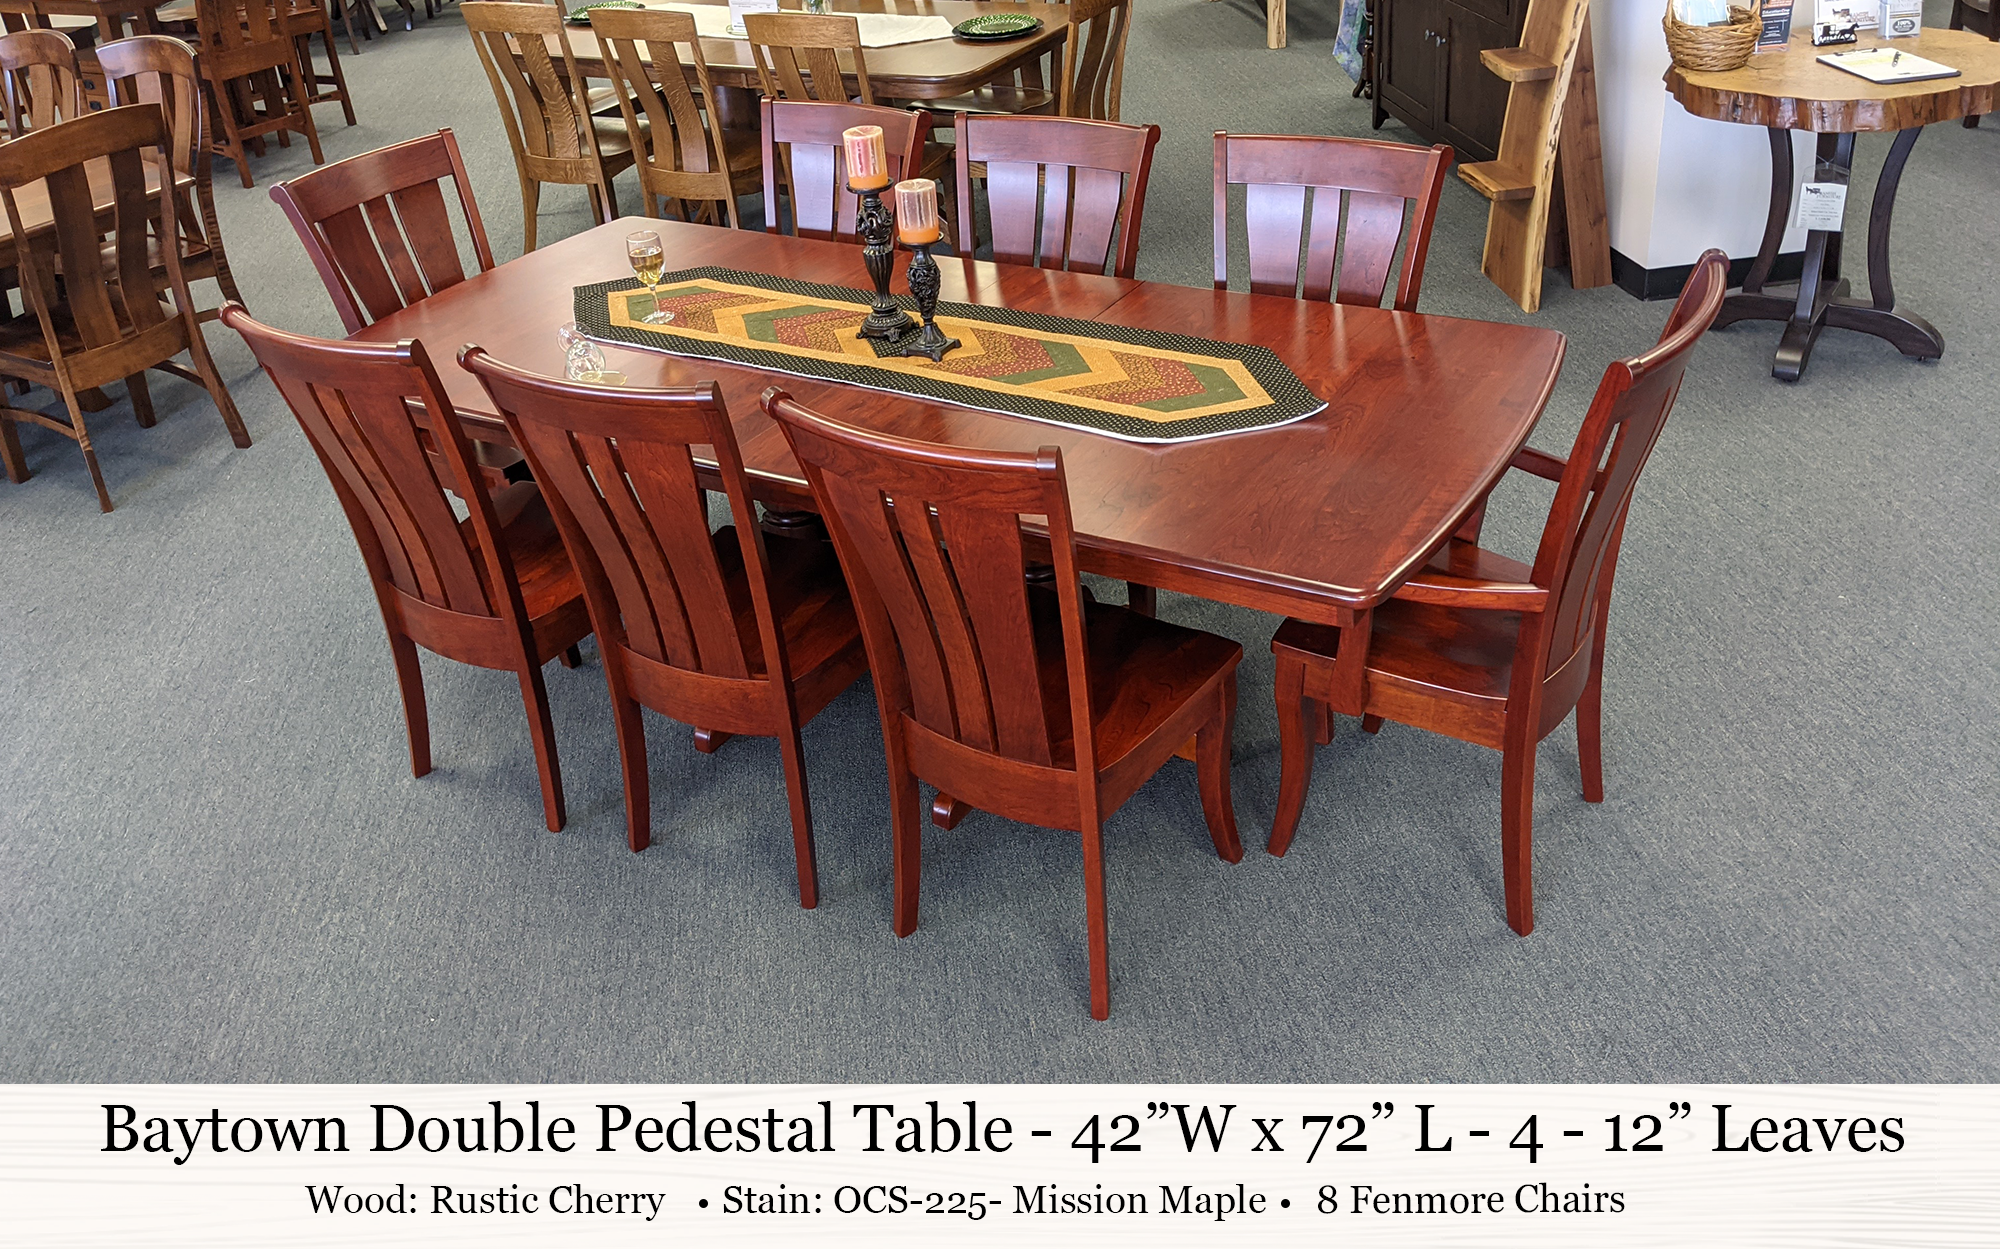 Baytown Double Pedestal Table With Fenmore Chairs